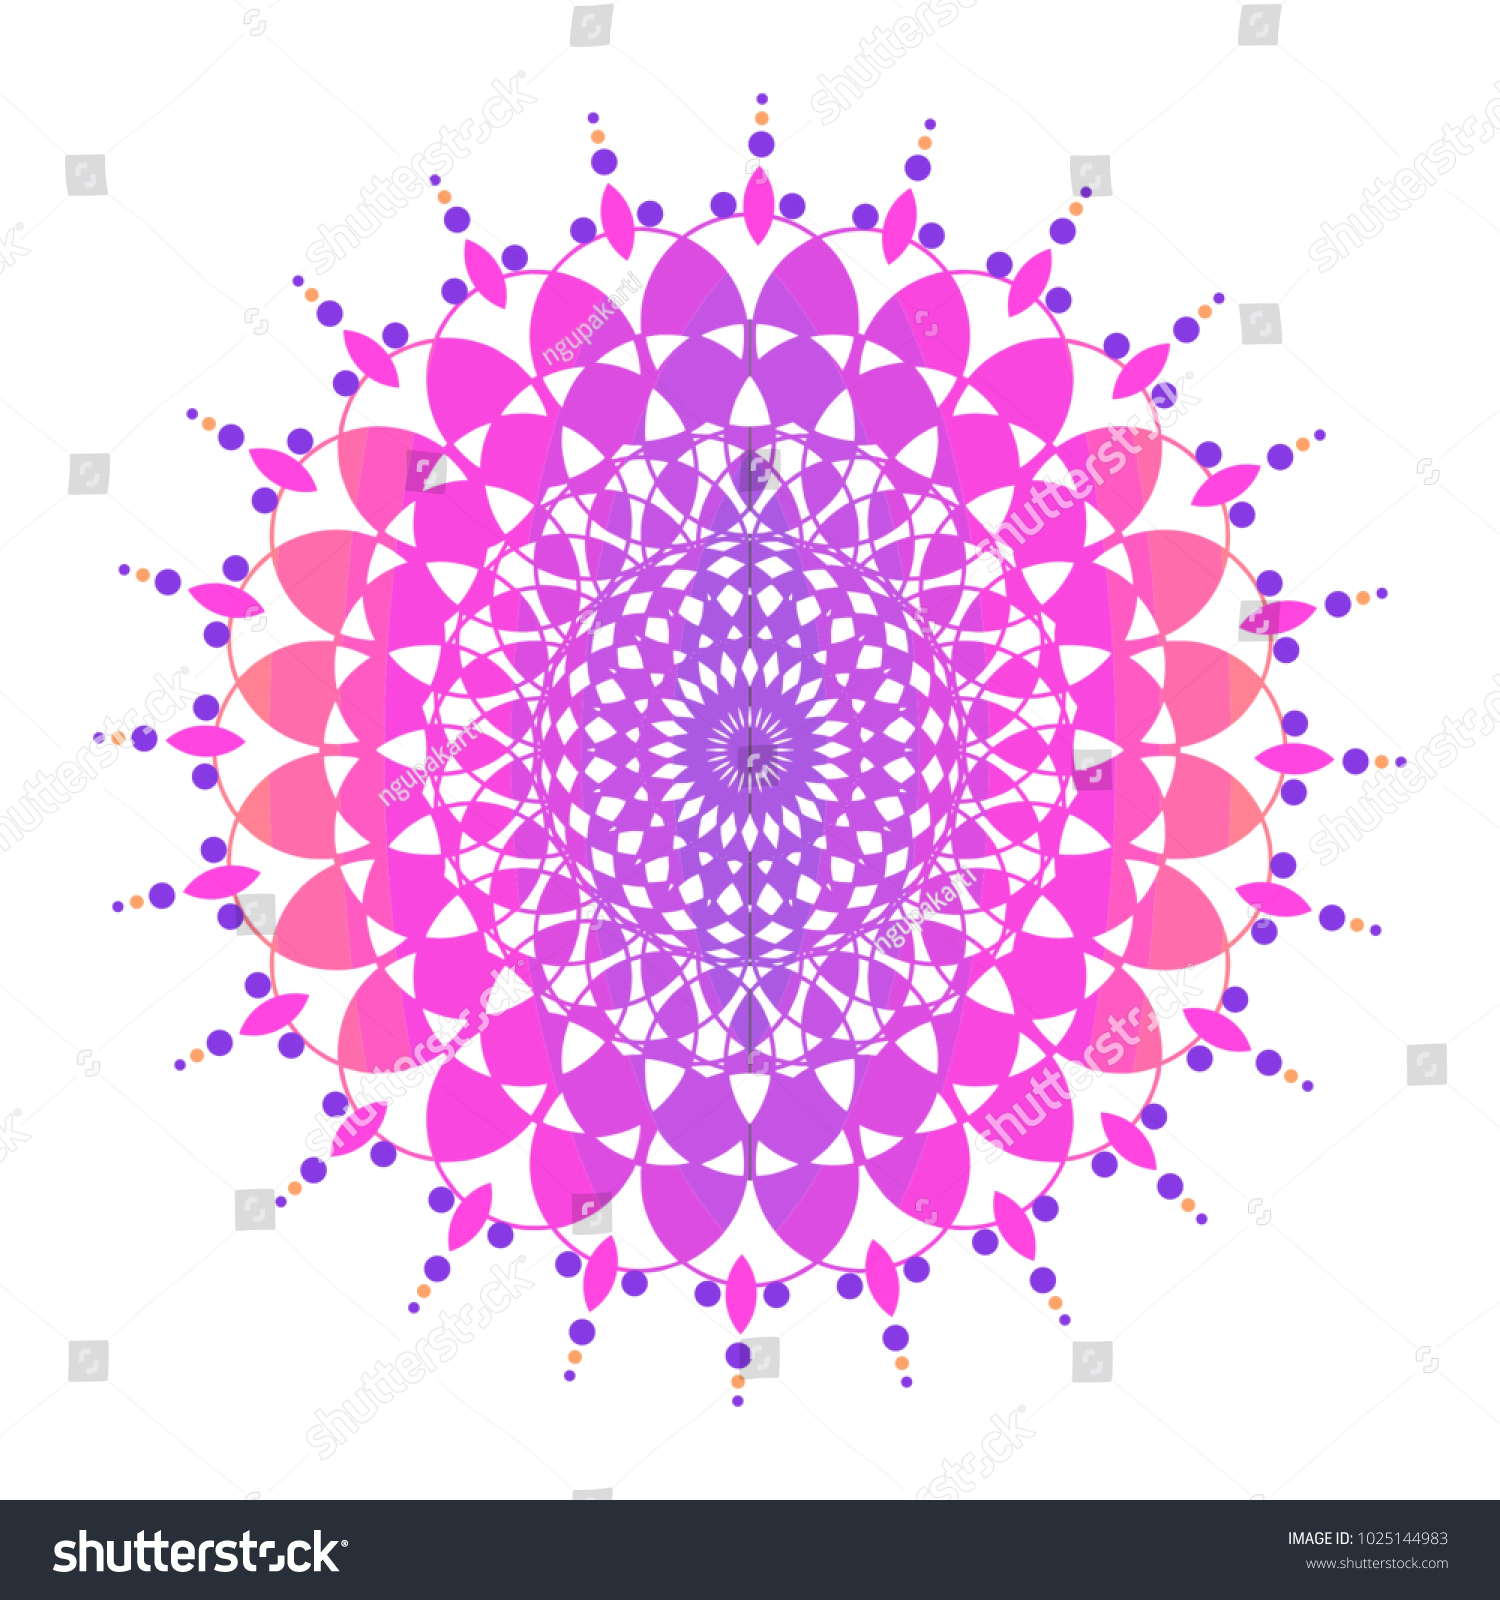 Colorful Mandala Sacred Ancient Geometric Culture Stock Vector